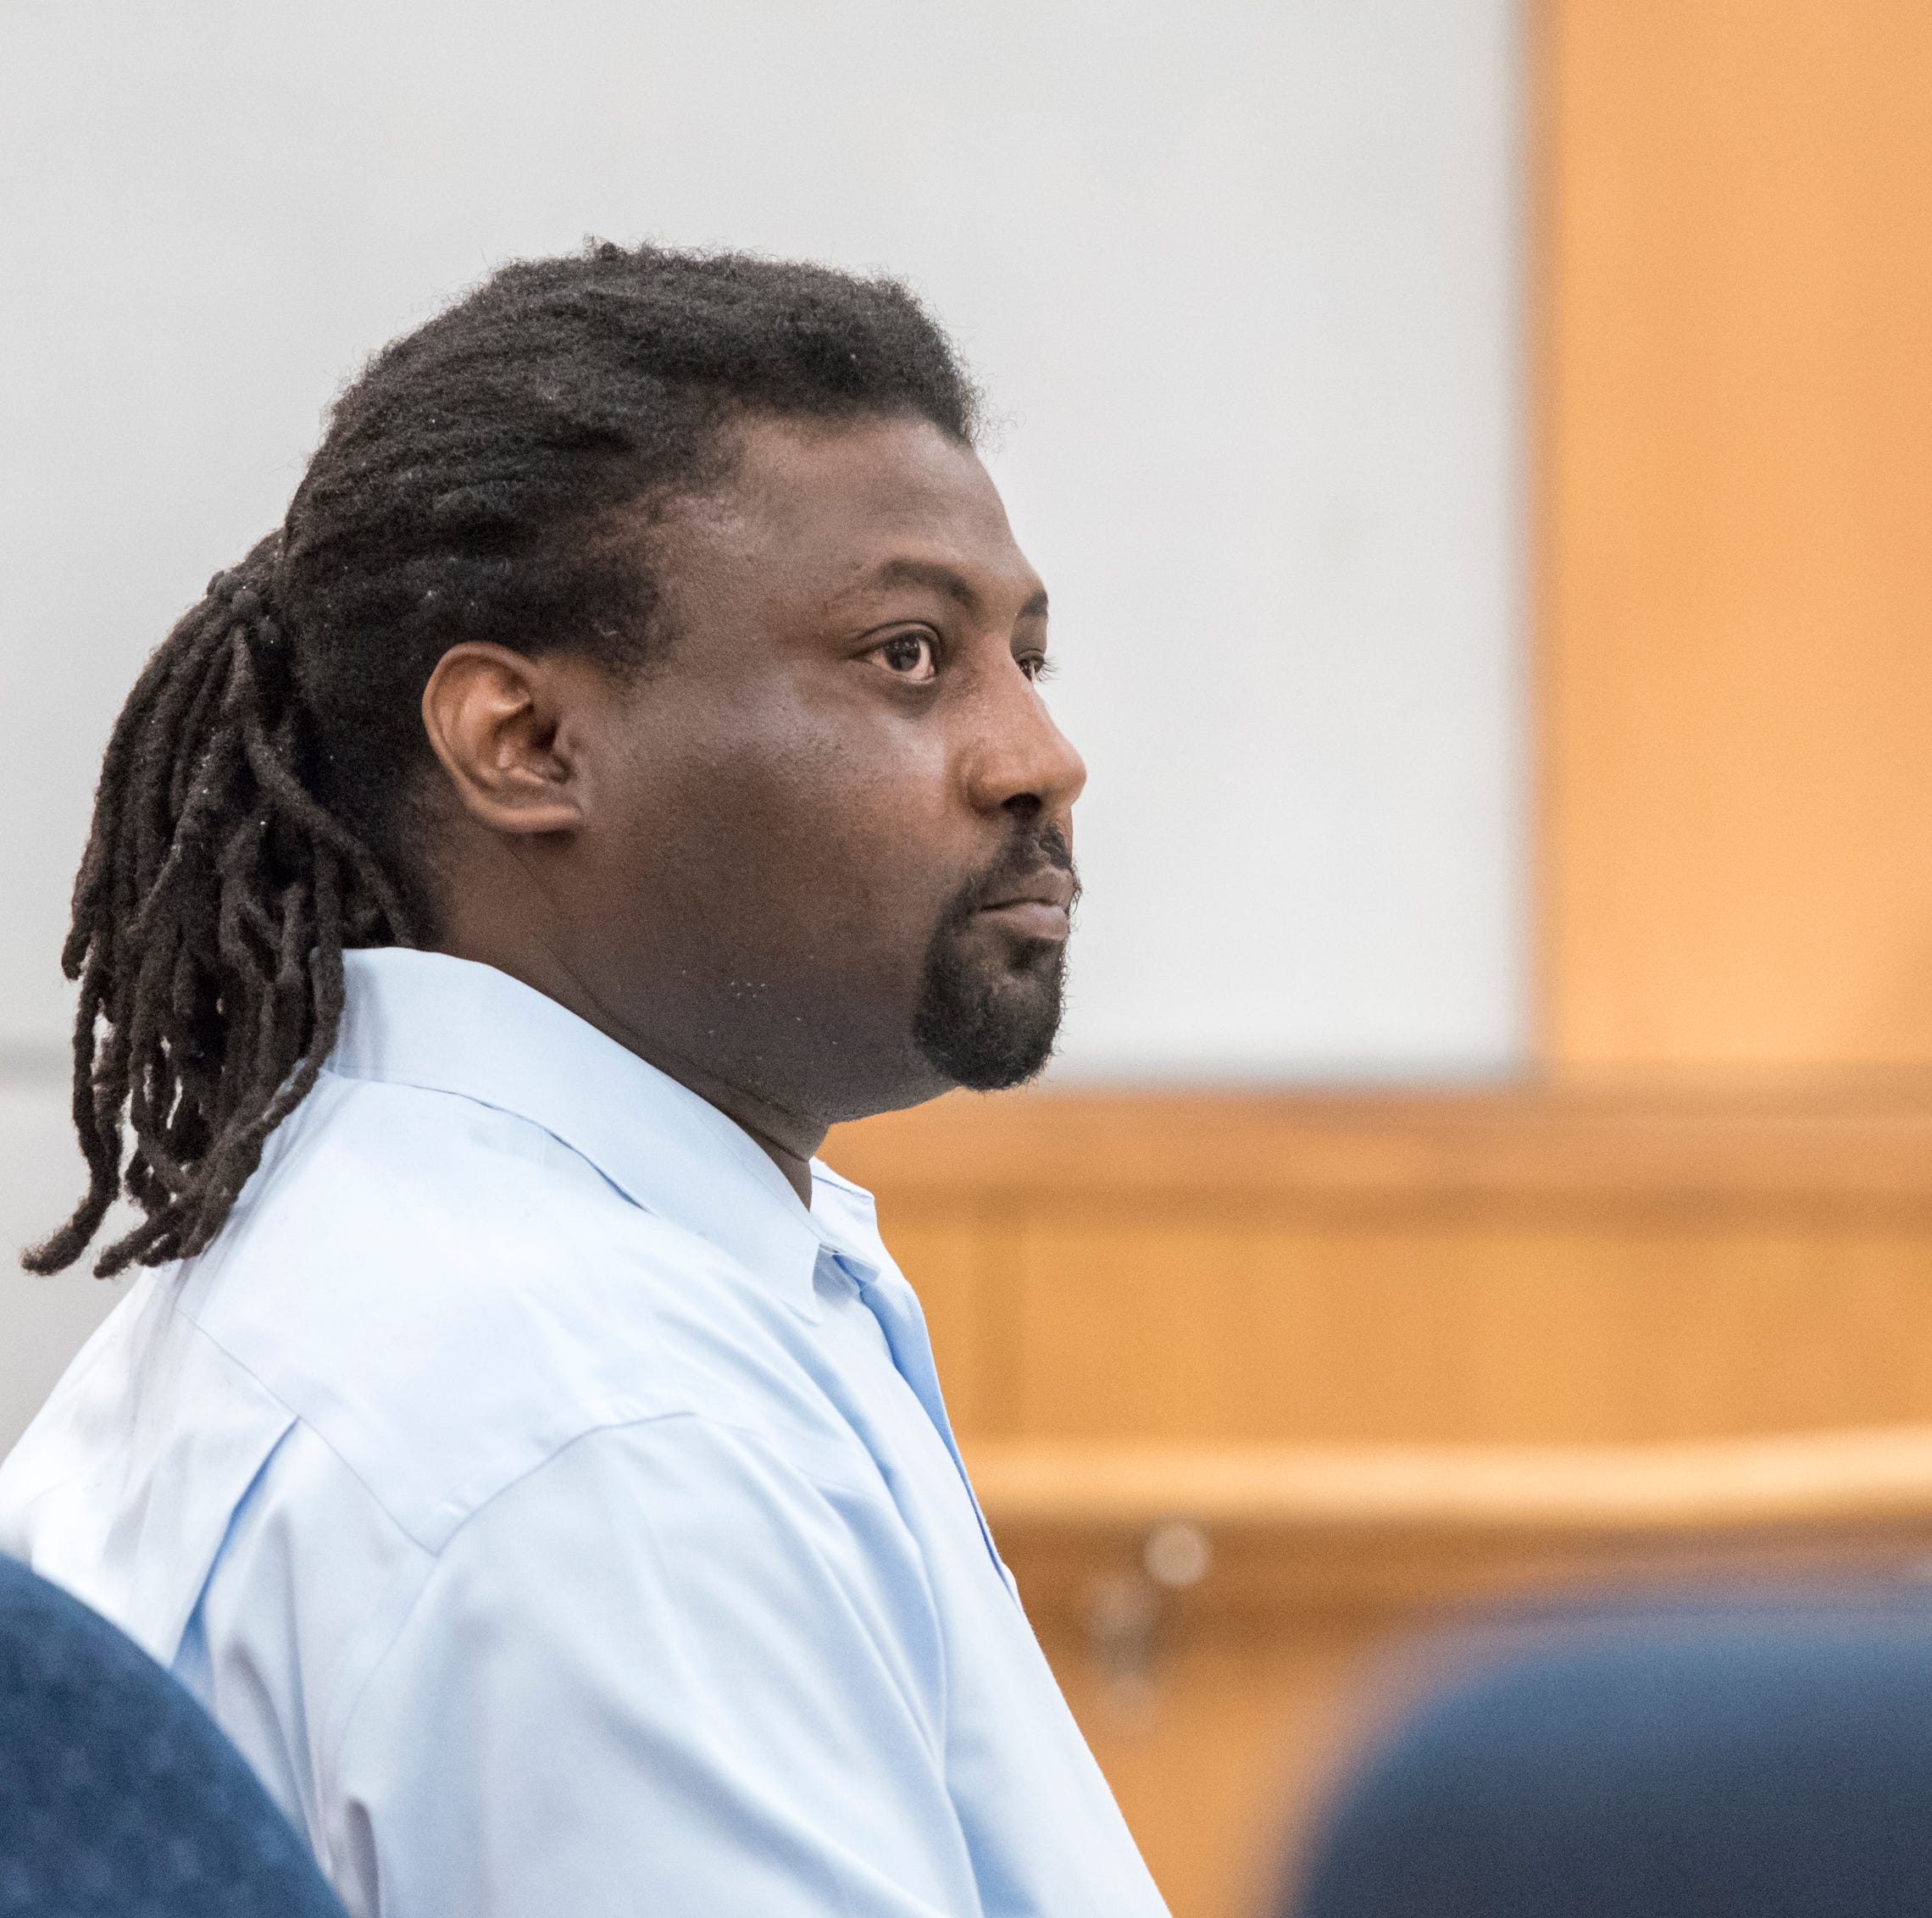 Pensacola man found guilty of murder in 2013 cold case